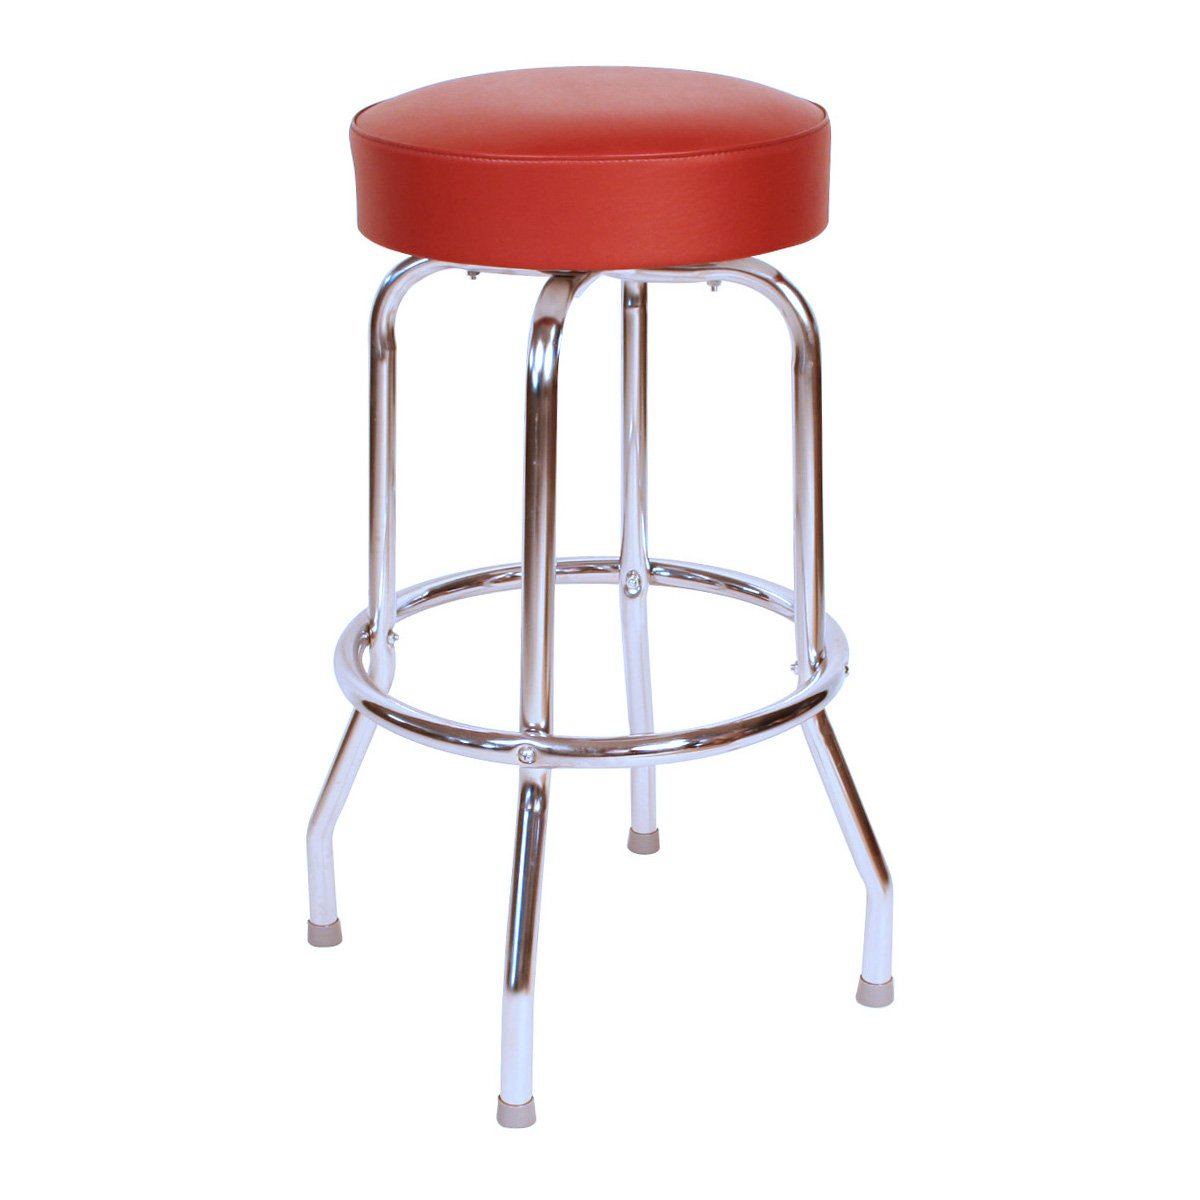 Kitchen stools with backs Photo - 2